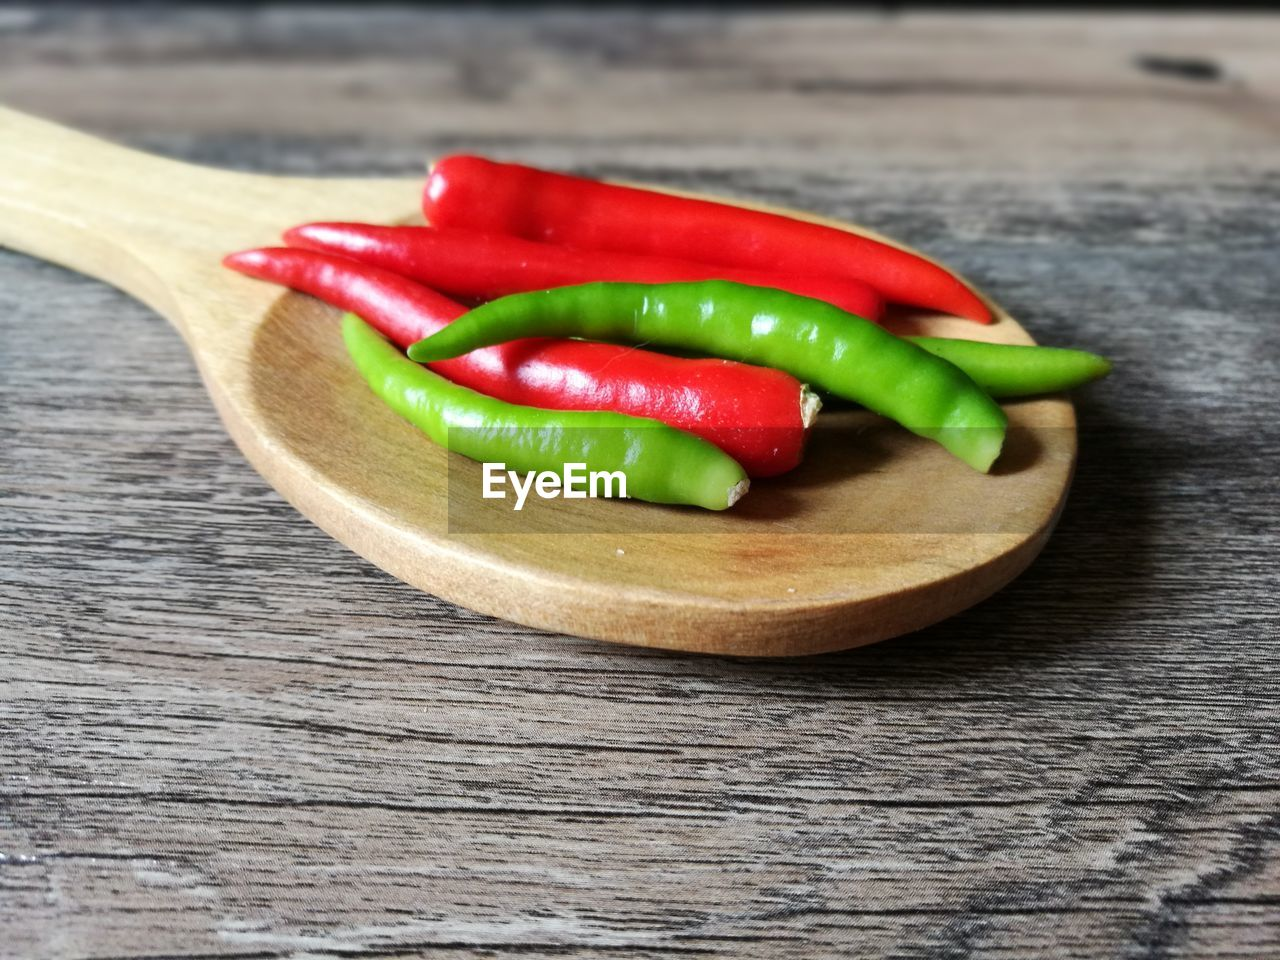 Close-up of chili peppers in wooden spoon on table